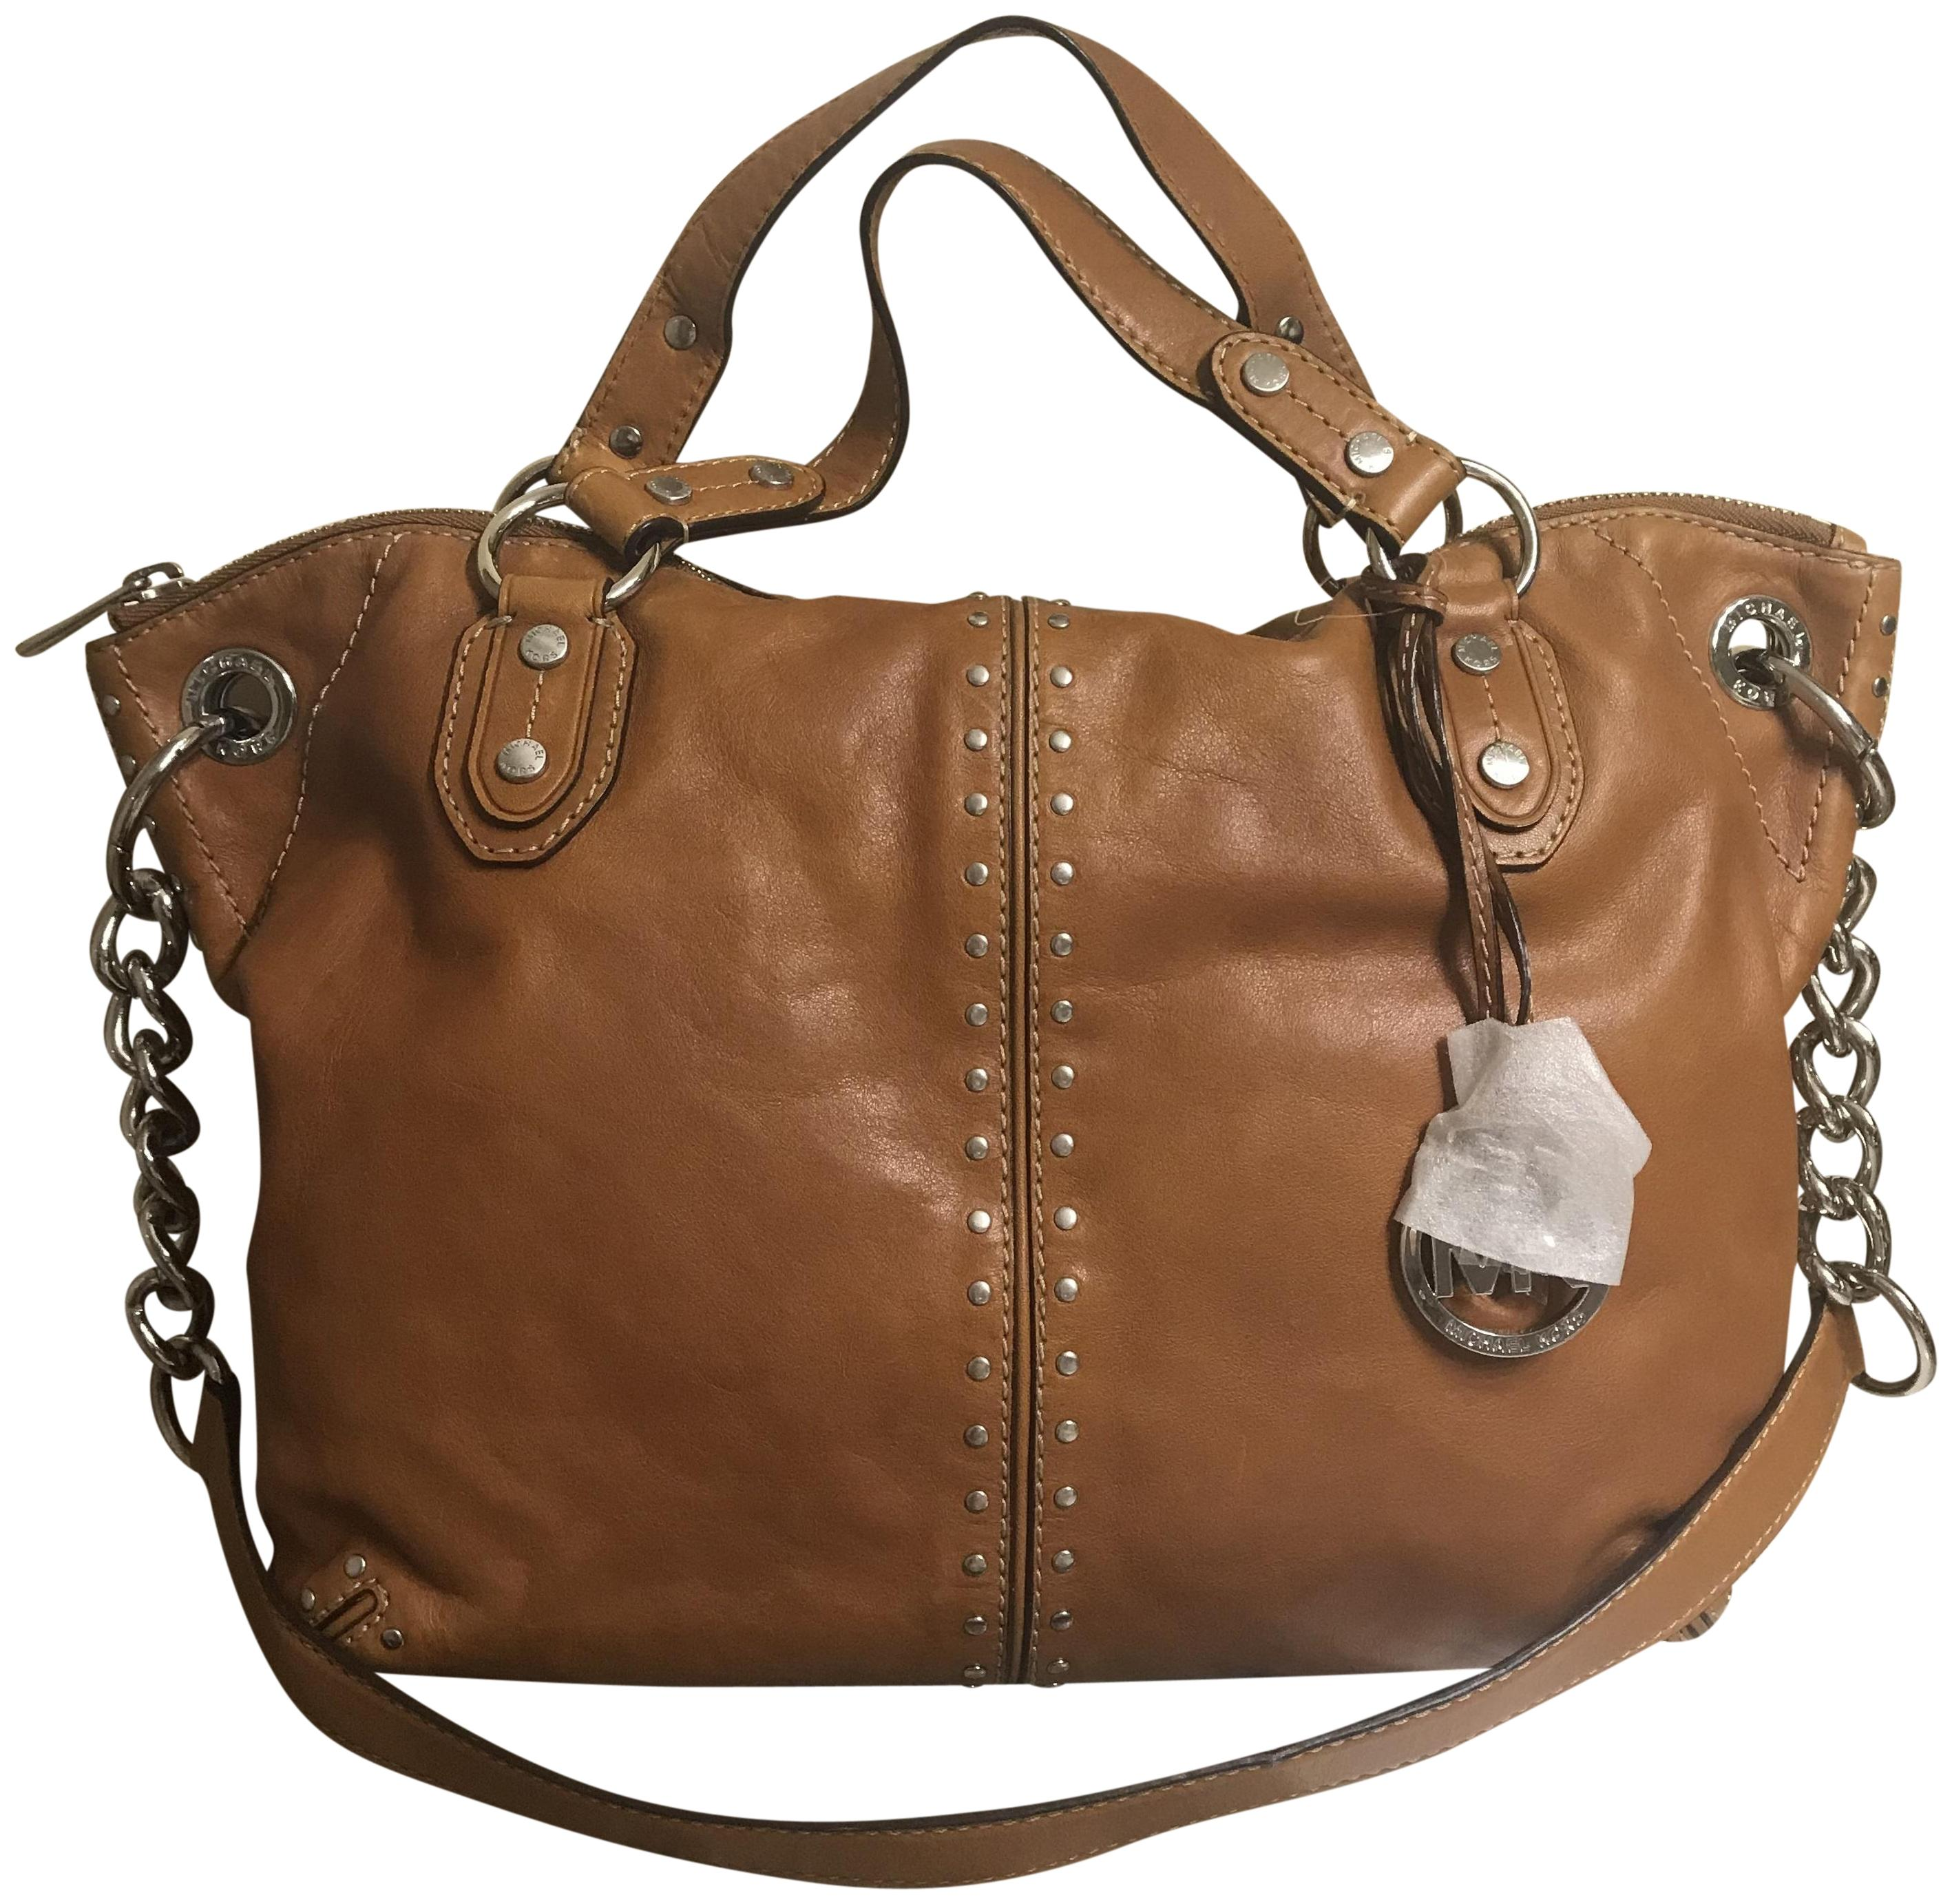 c70d880d7a7b68 new style michael kors stud studs large shoulder satchel tote in luggage  brown silver 0e402 bf73a